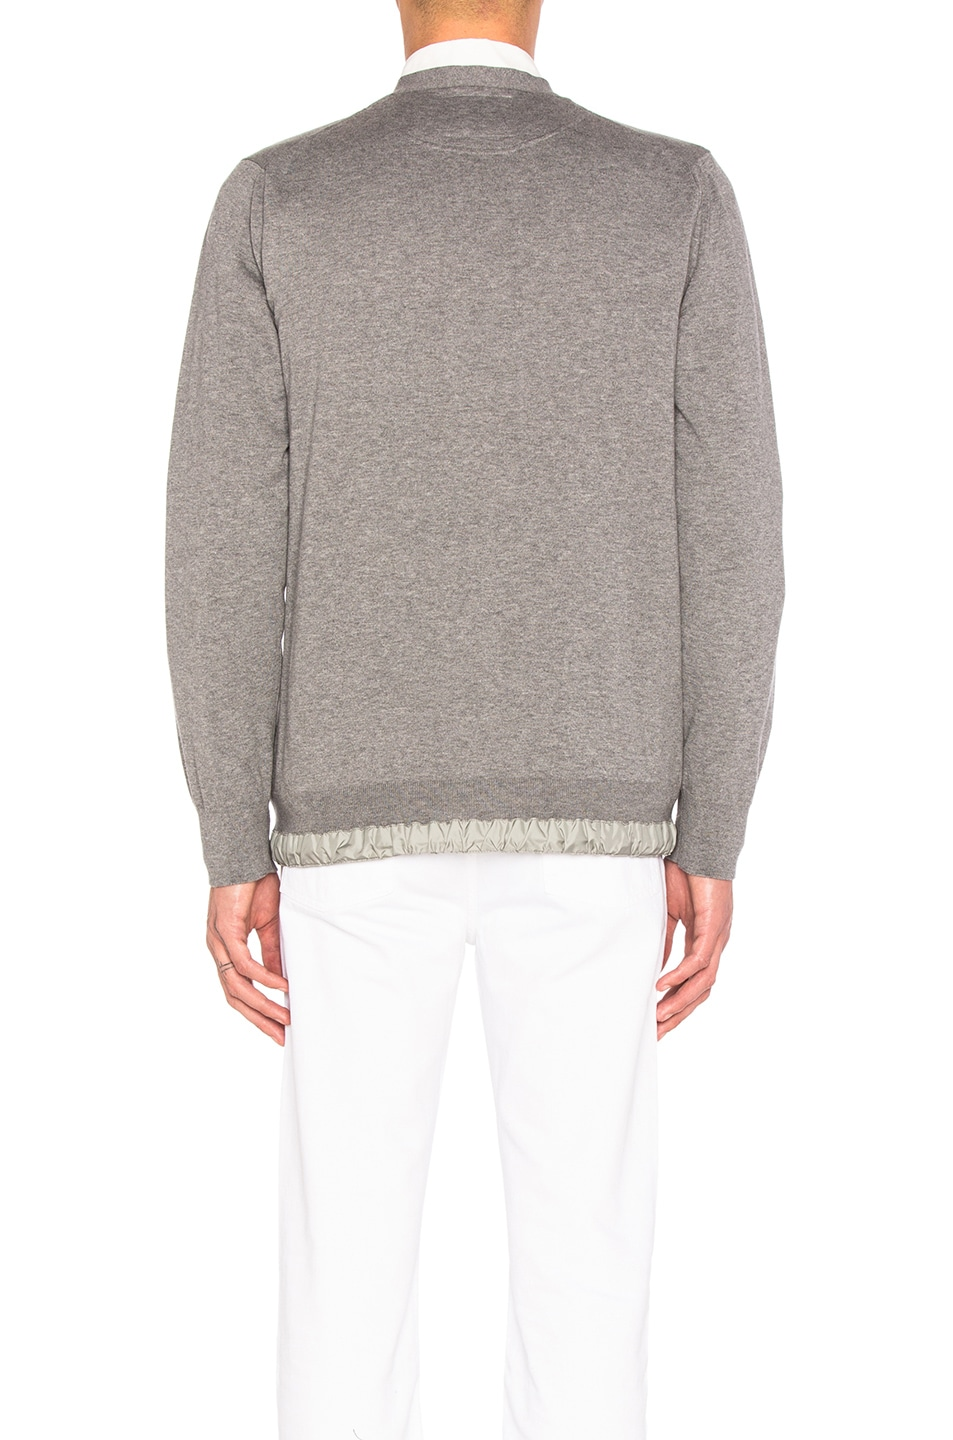 a87a3c63c2 Image 5 of Sacai Cotton Cashmere Knit Cardigan in Light Grey